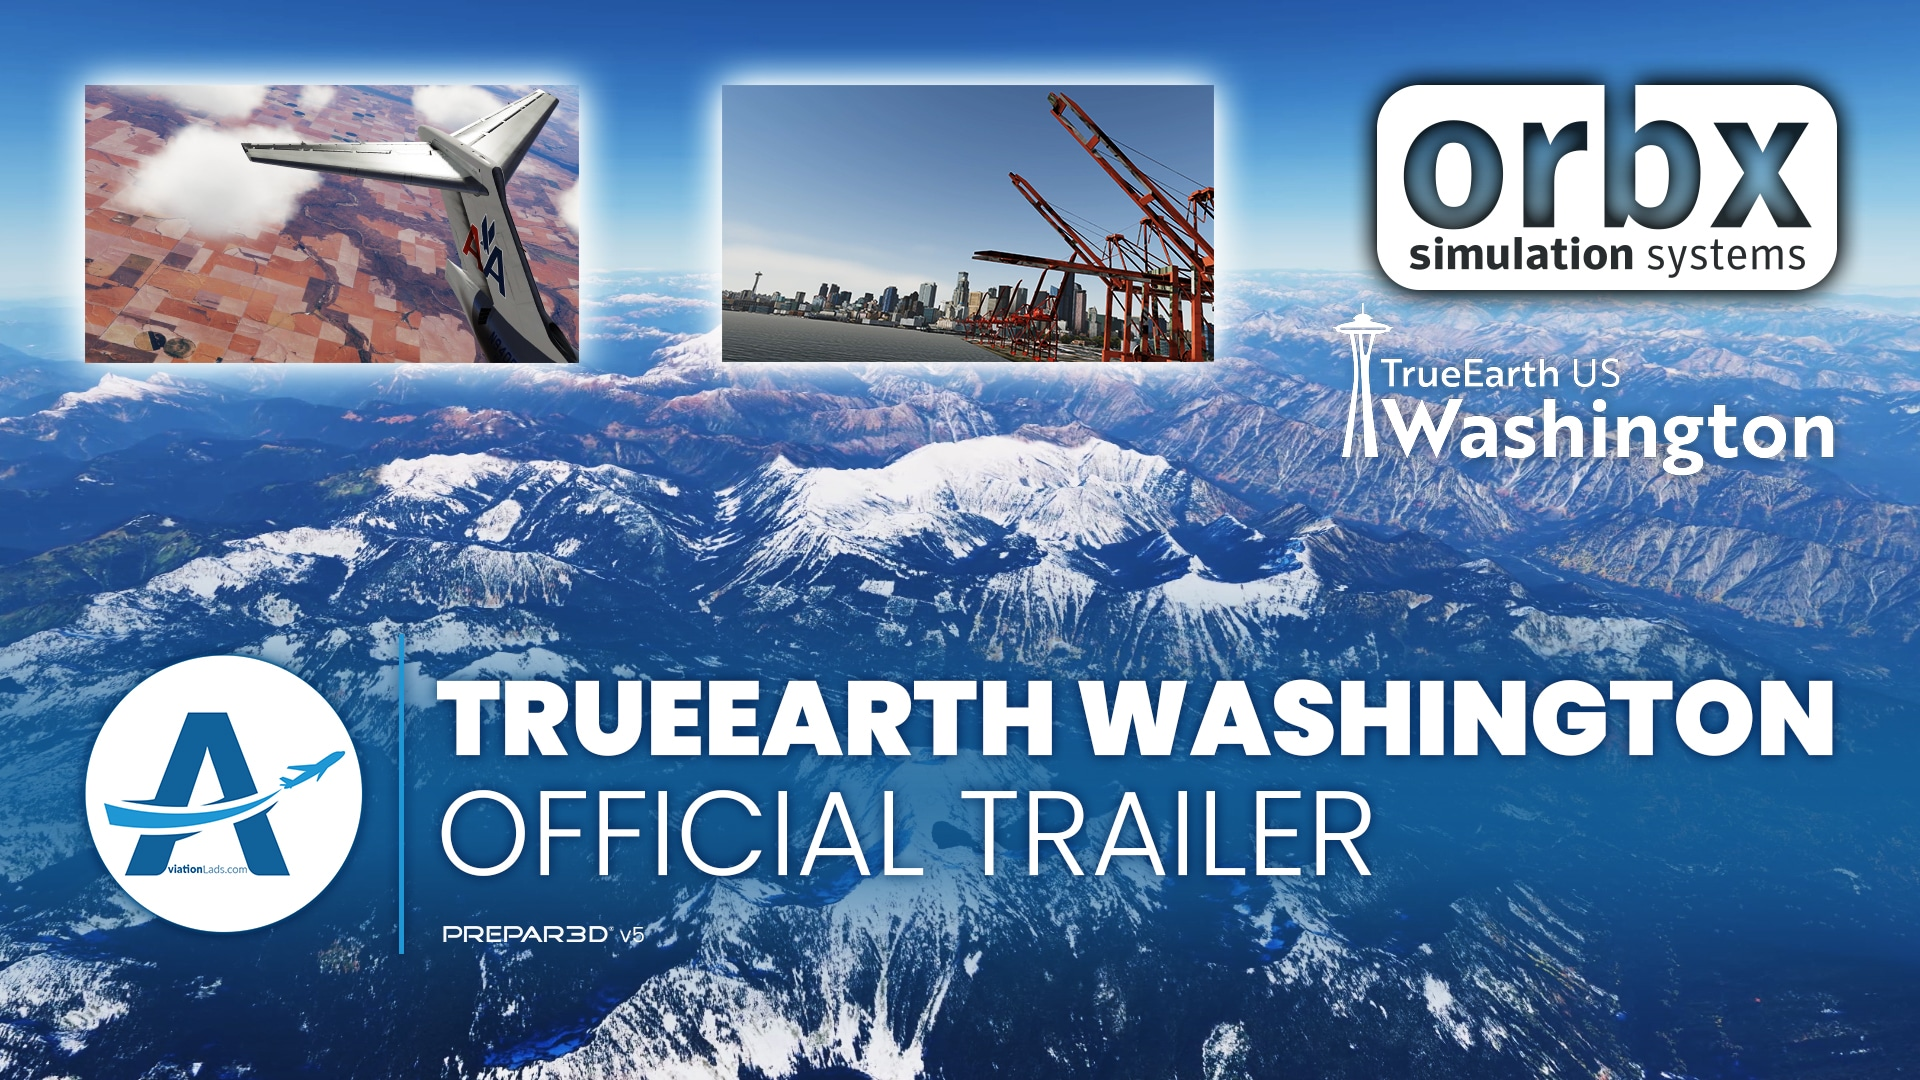 [TRAILER] ORBX – TrueEarth Washington